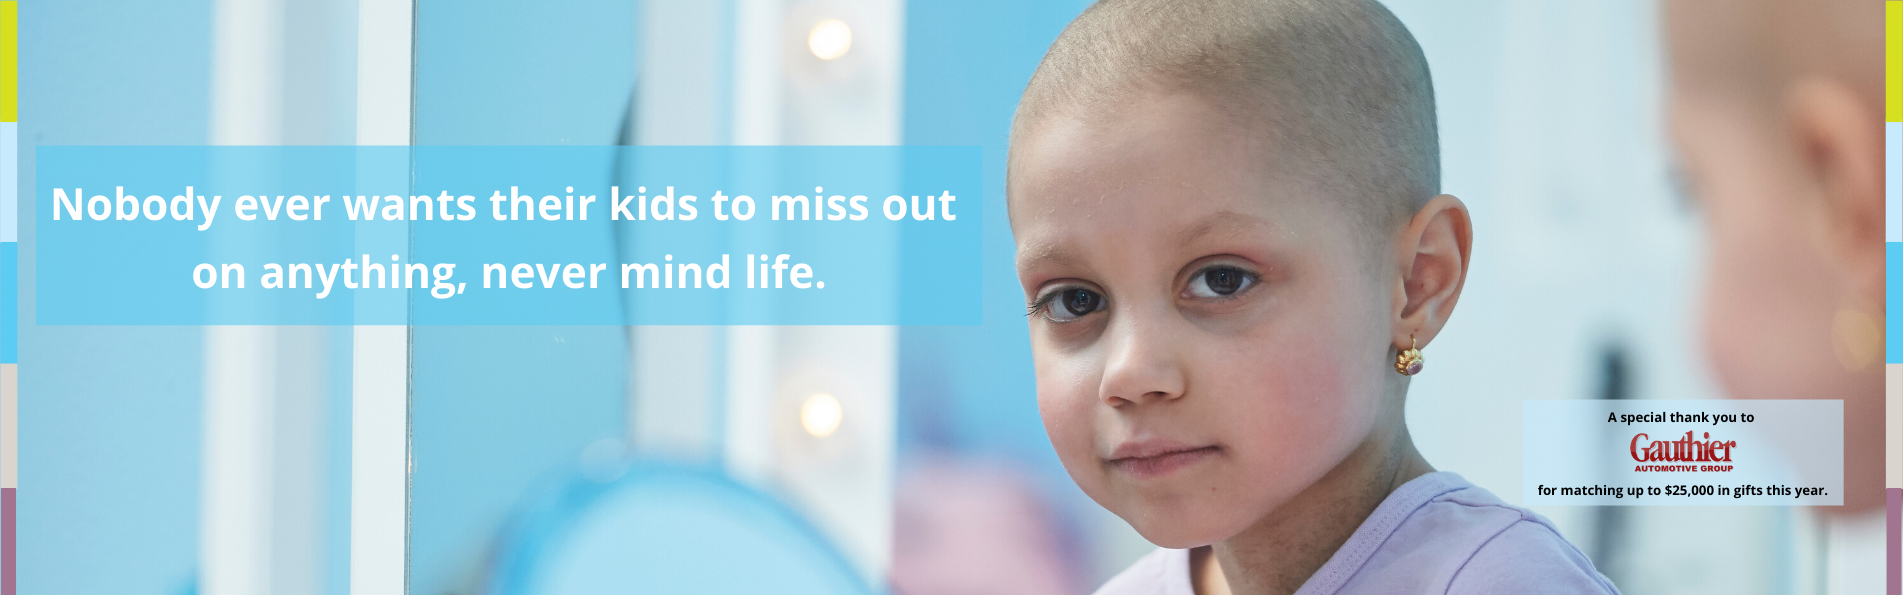 Your donation will help change the course of cancer in Manitoba.